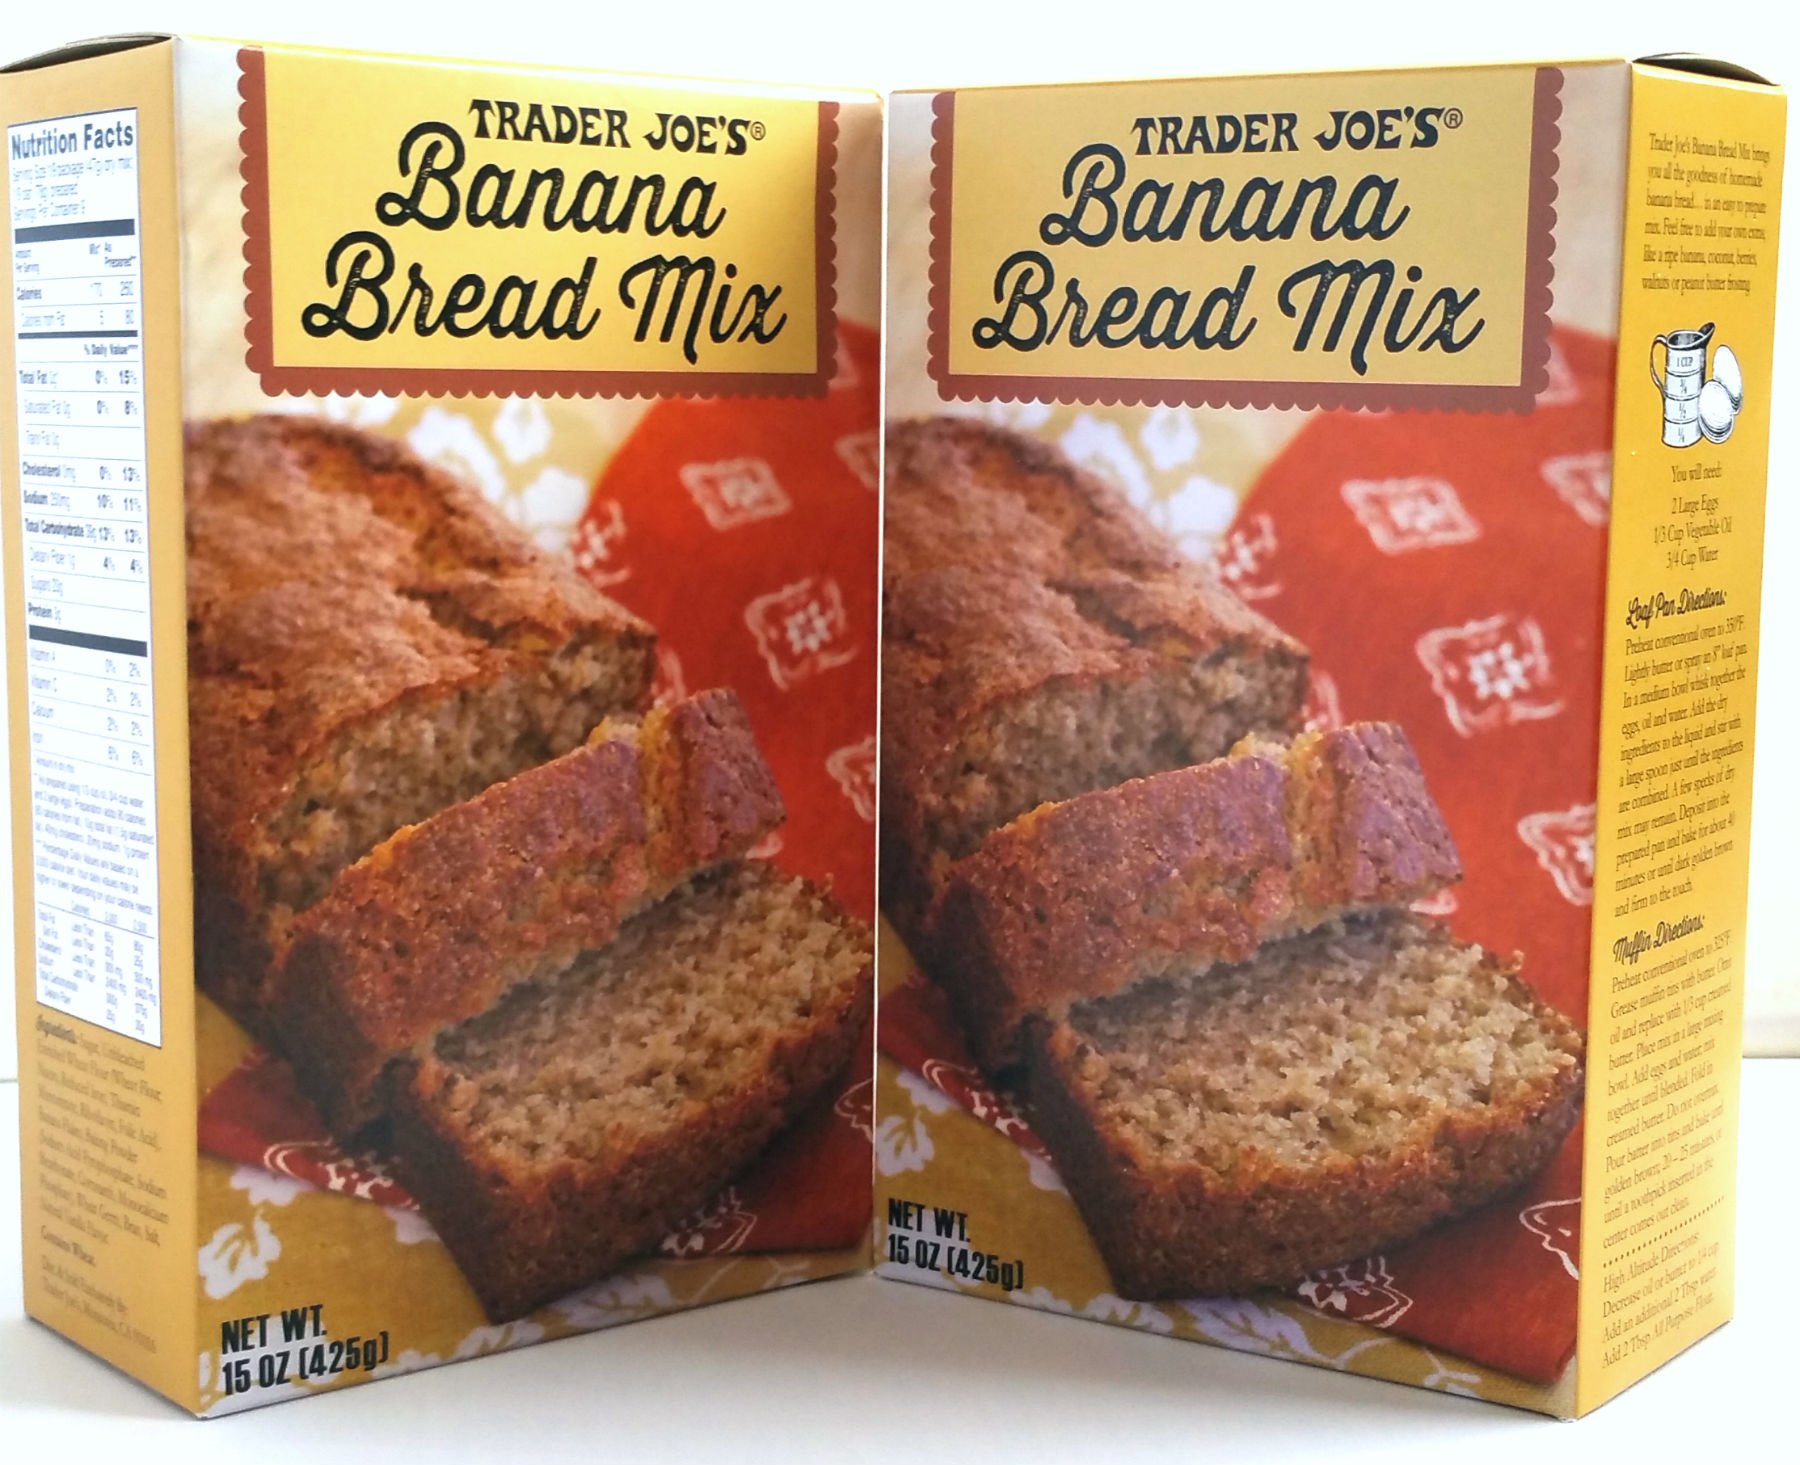 Trader Joe's - Banana Bread Mix - Net Wt. 15 Oz (425g) - 2 Boxes